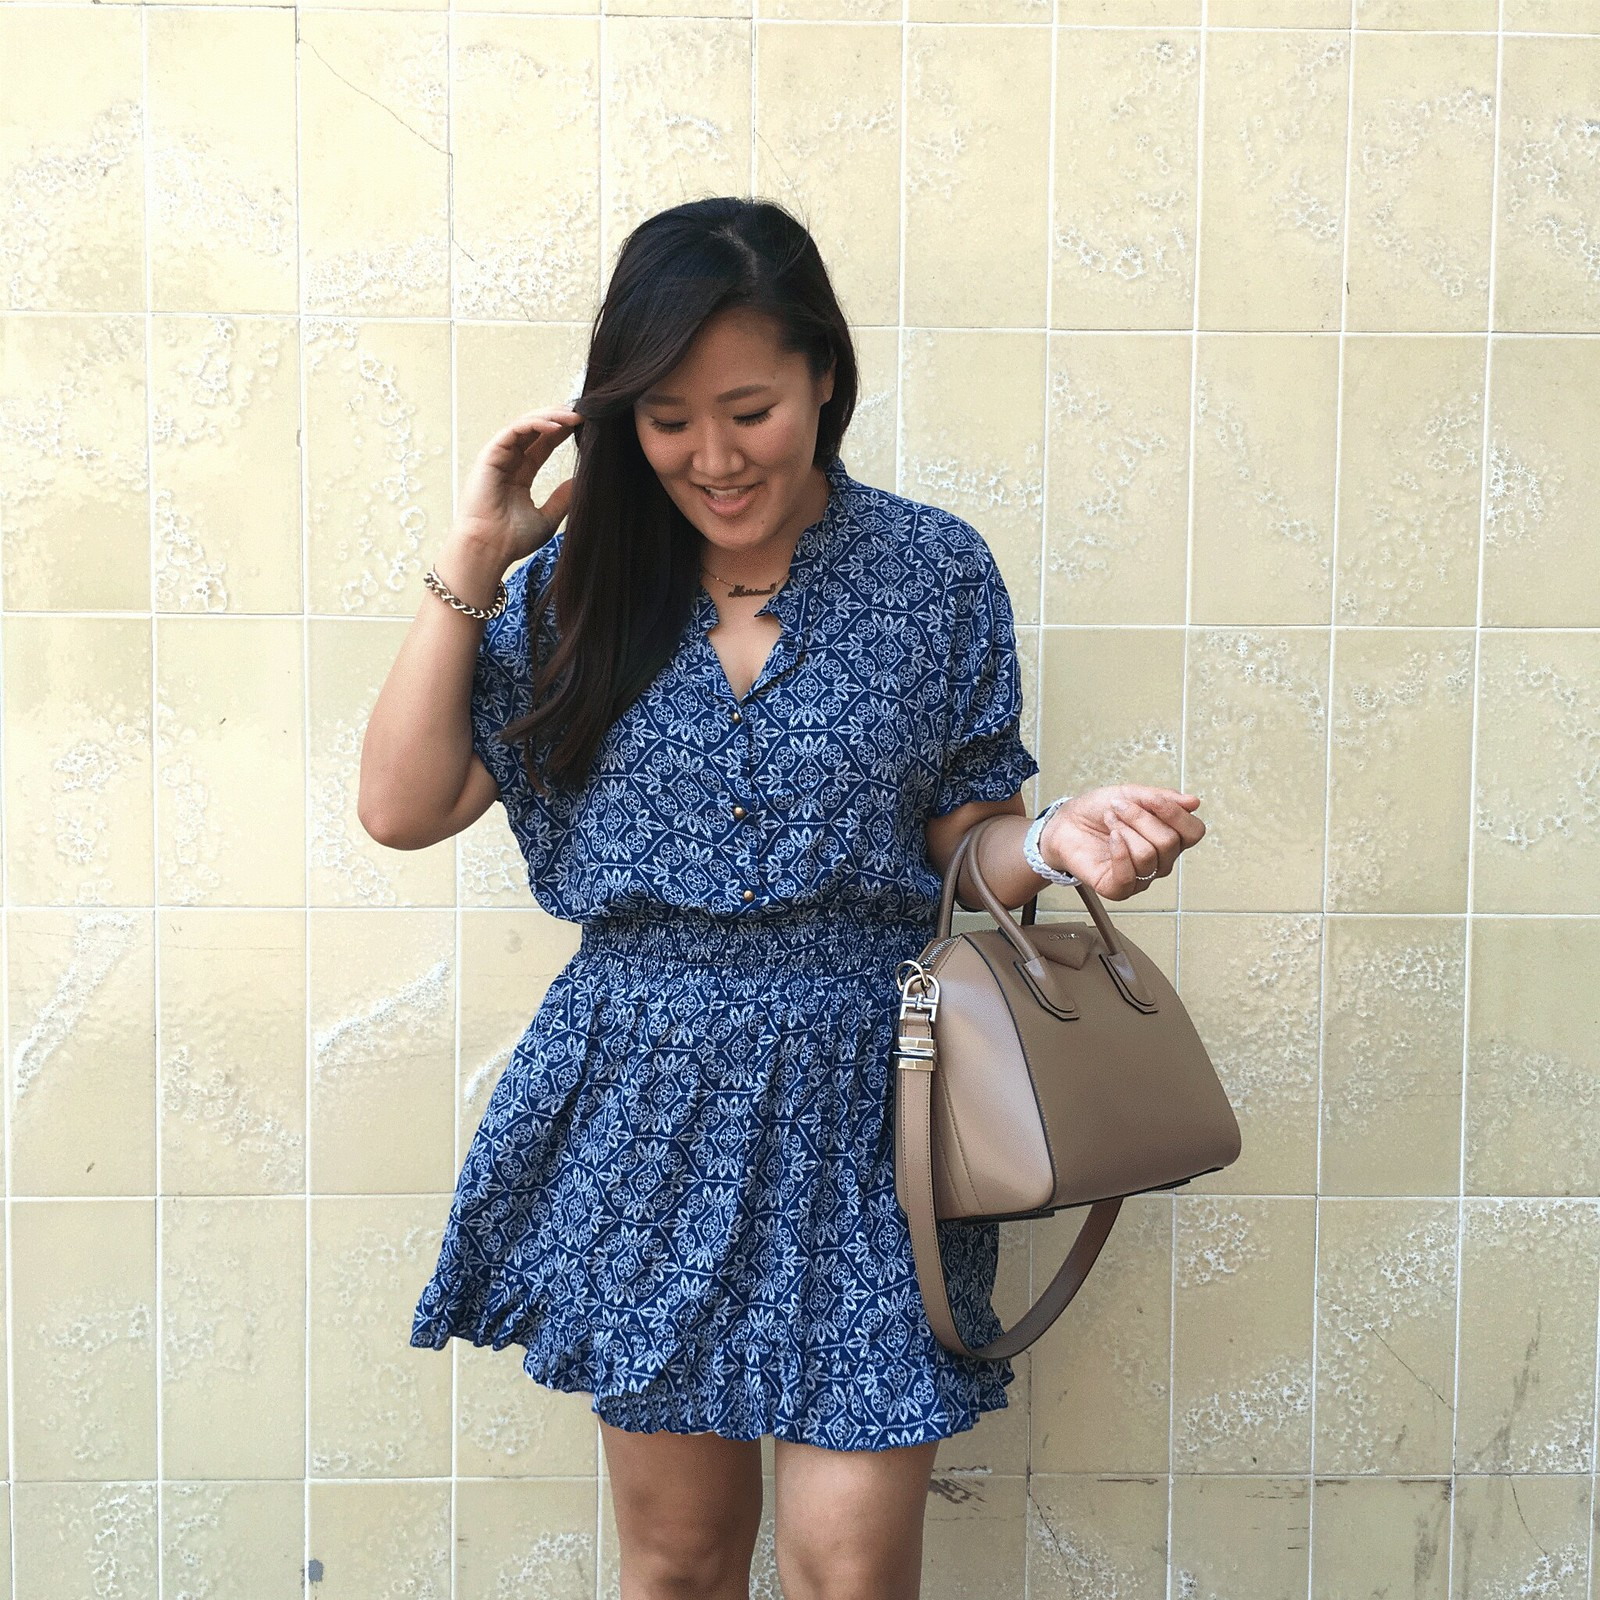 simplyxclassic, givenchy antigona bag, goodnight macaron dress, orange county, fashion blogger,